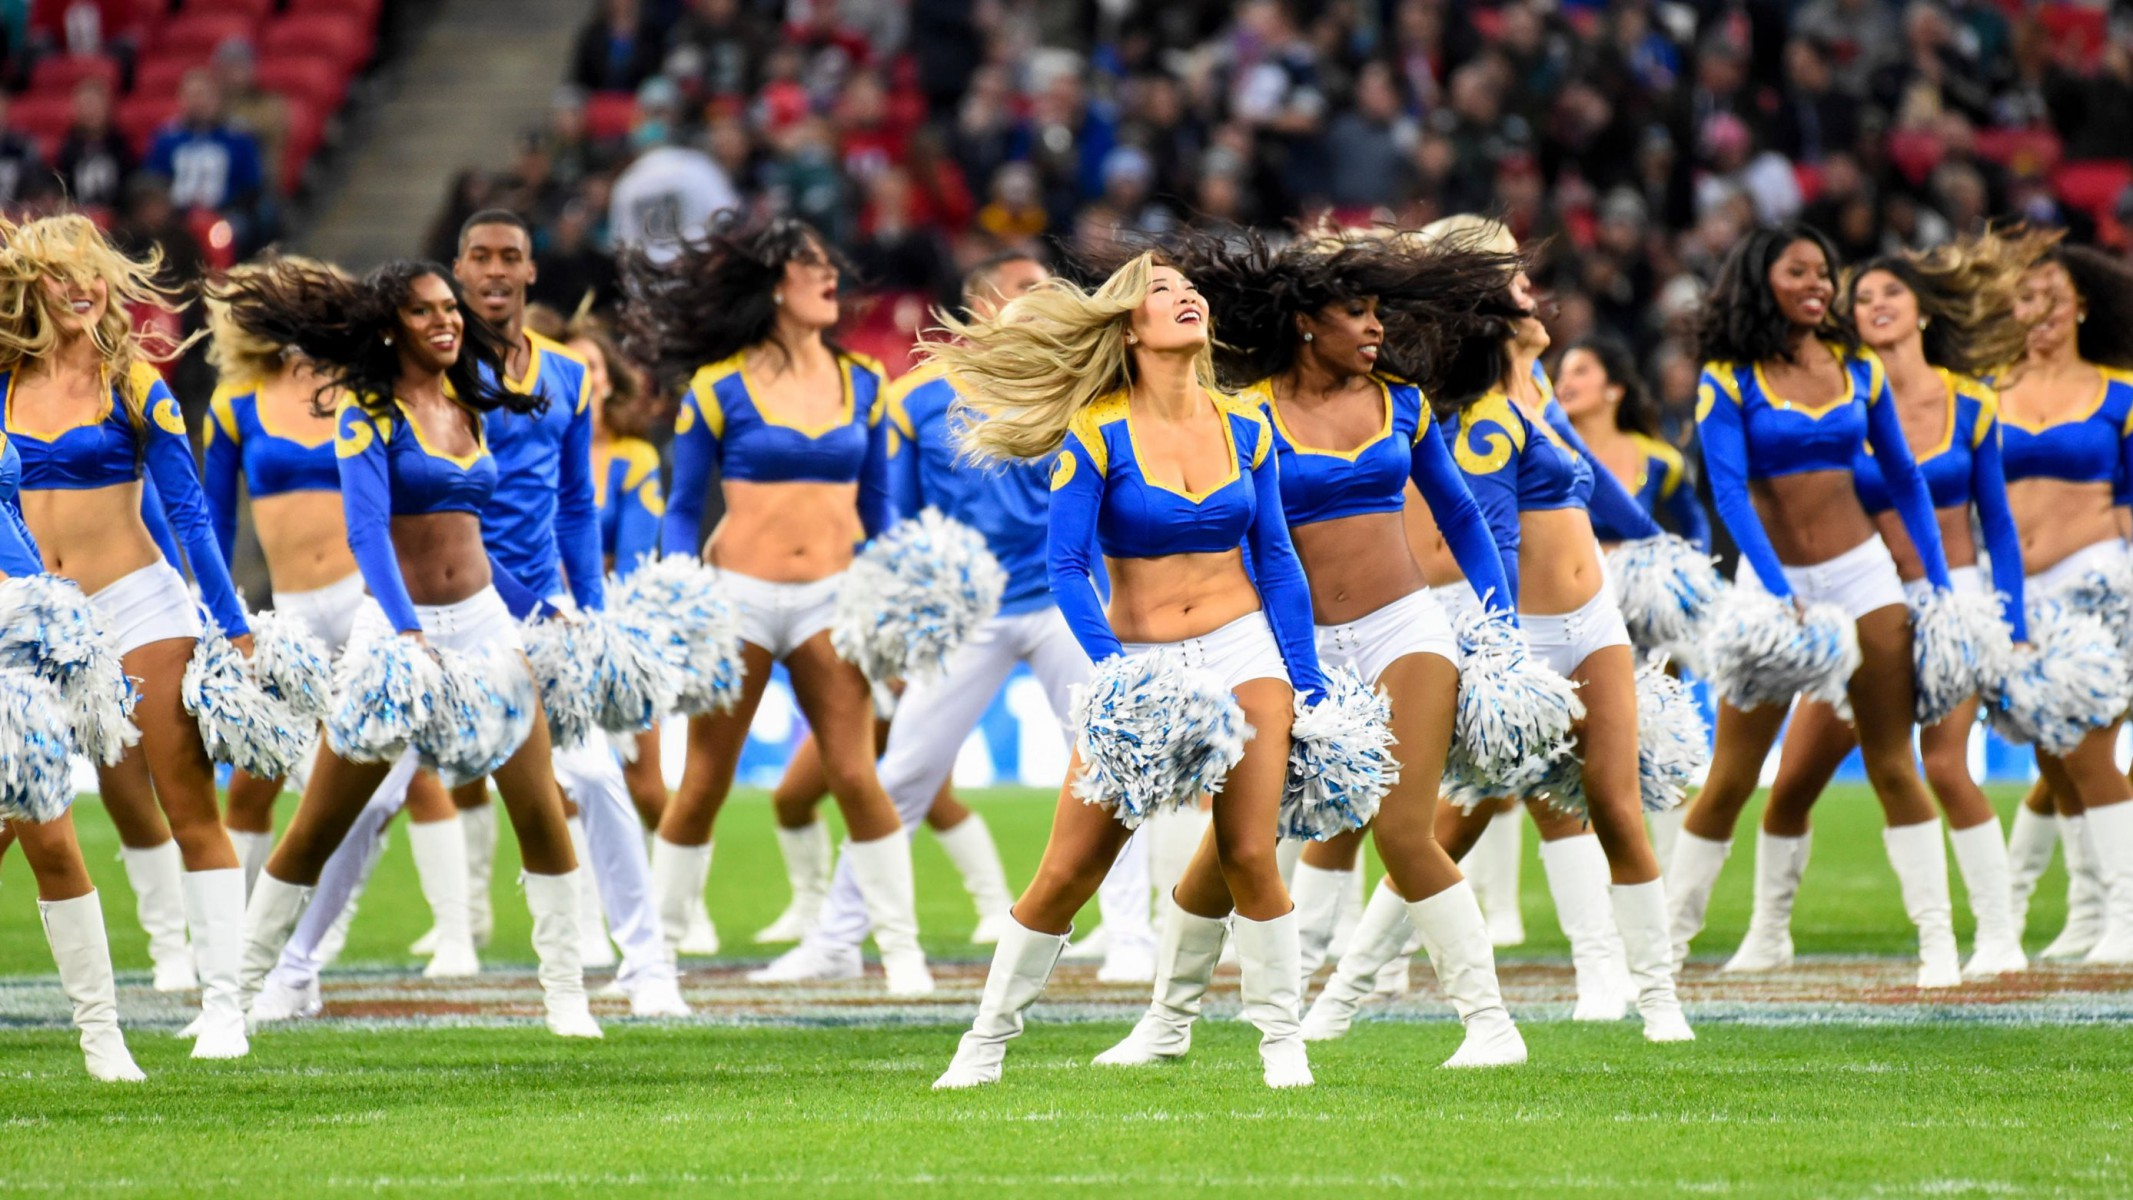 It was the first game of the current NFL season held at Wembley with another one next weekend